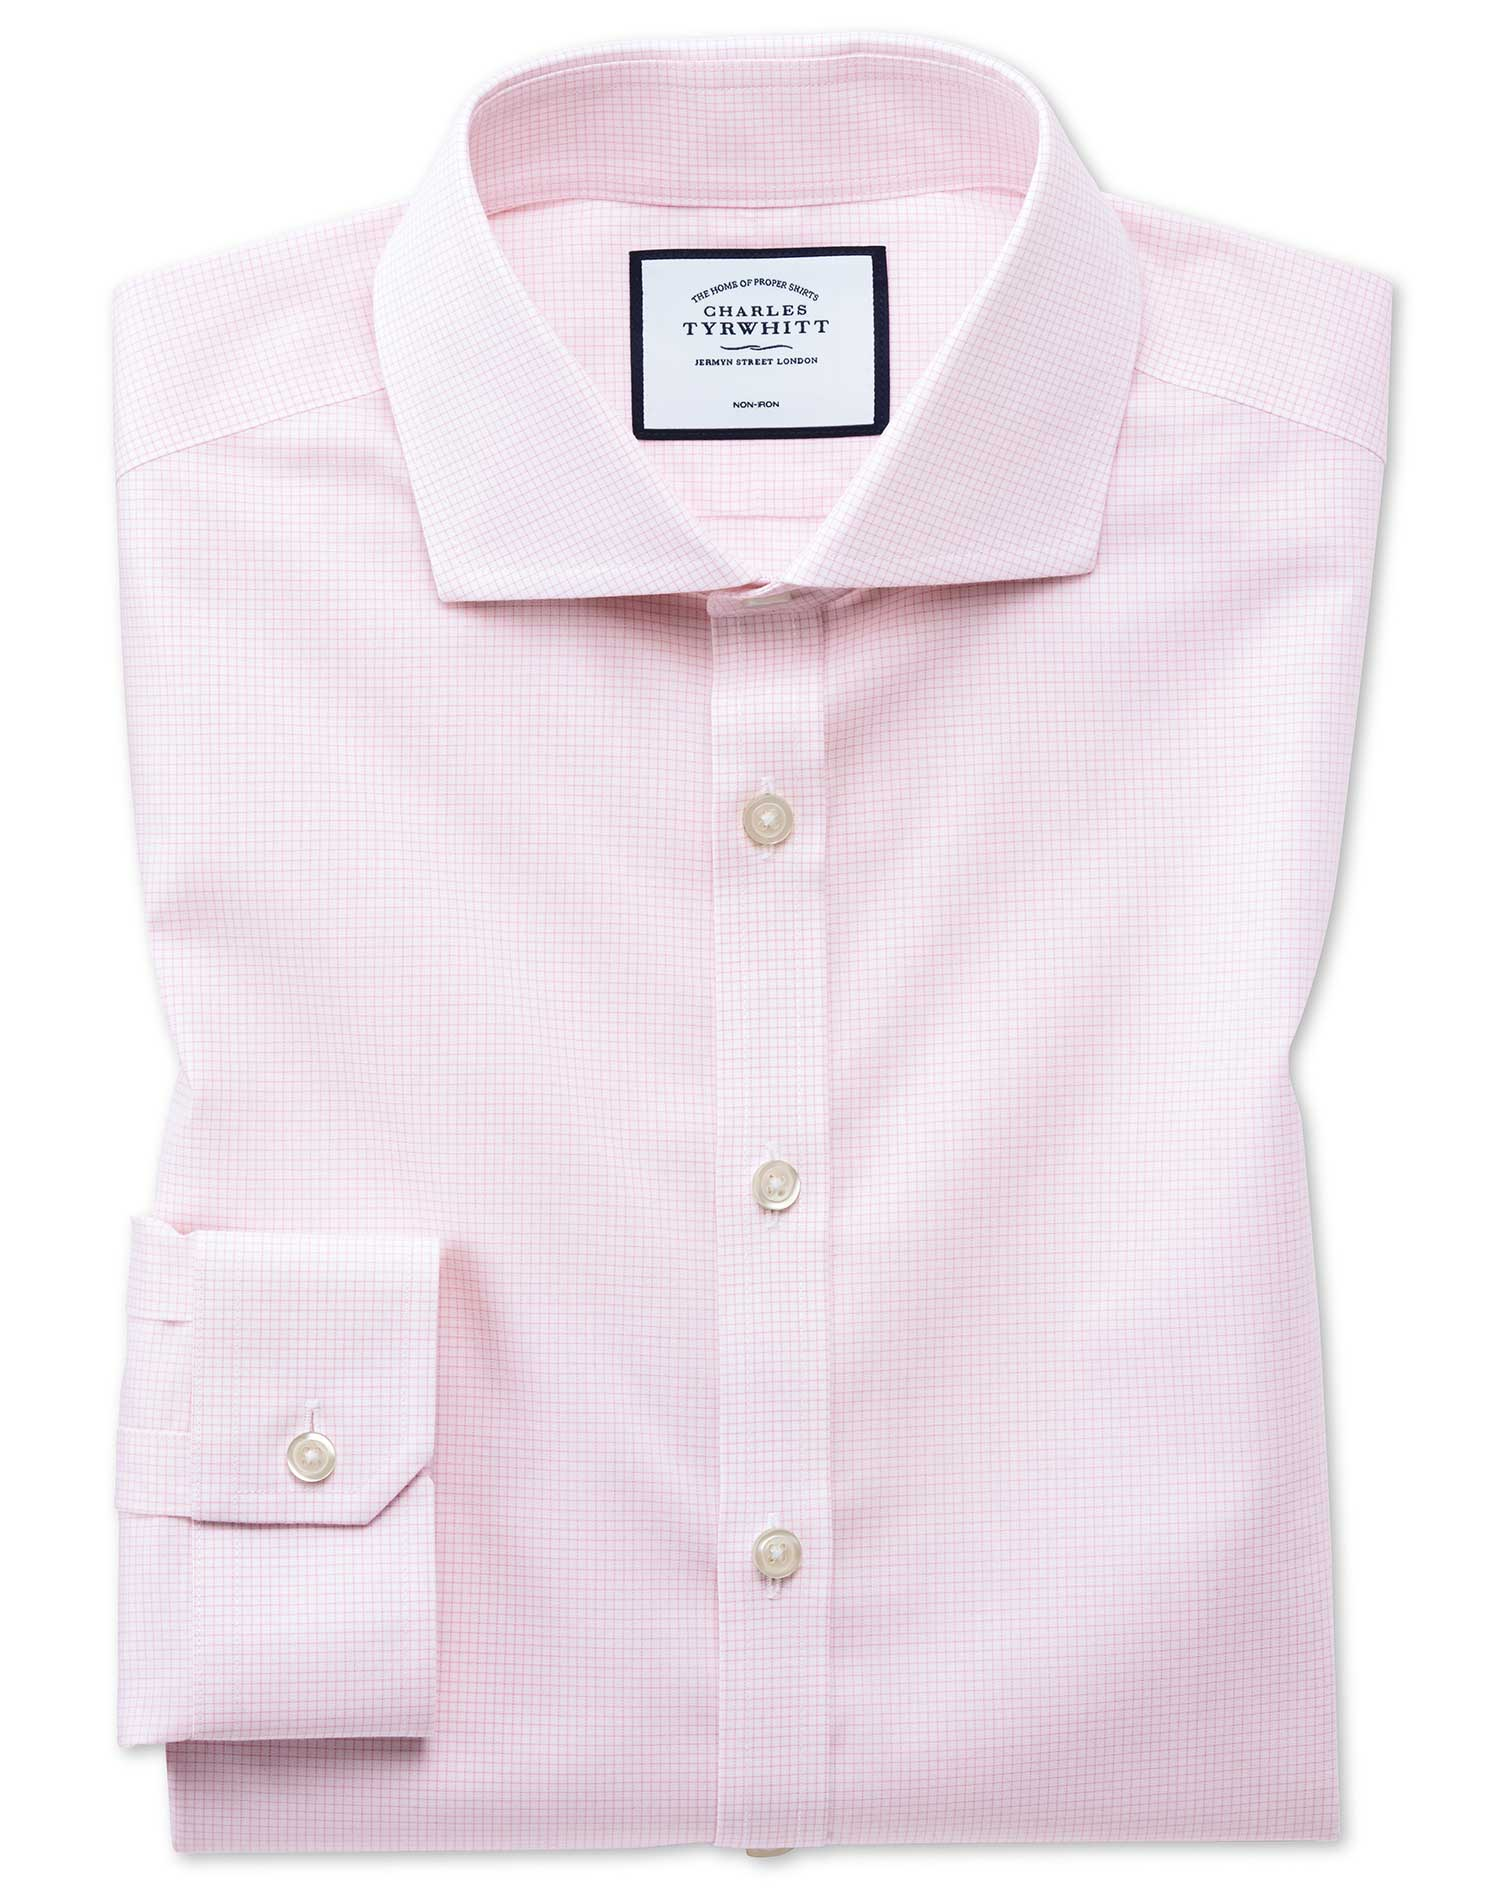 Super Slim Fit Non-Iron 4-Way Stretch Pink Check Cotton Formal Shirt Single Cuff Size 15.5/33 by Cha